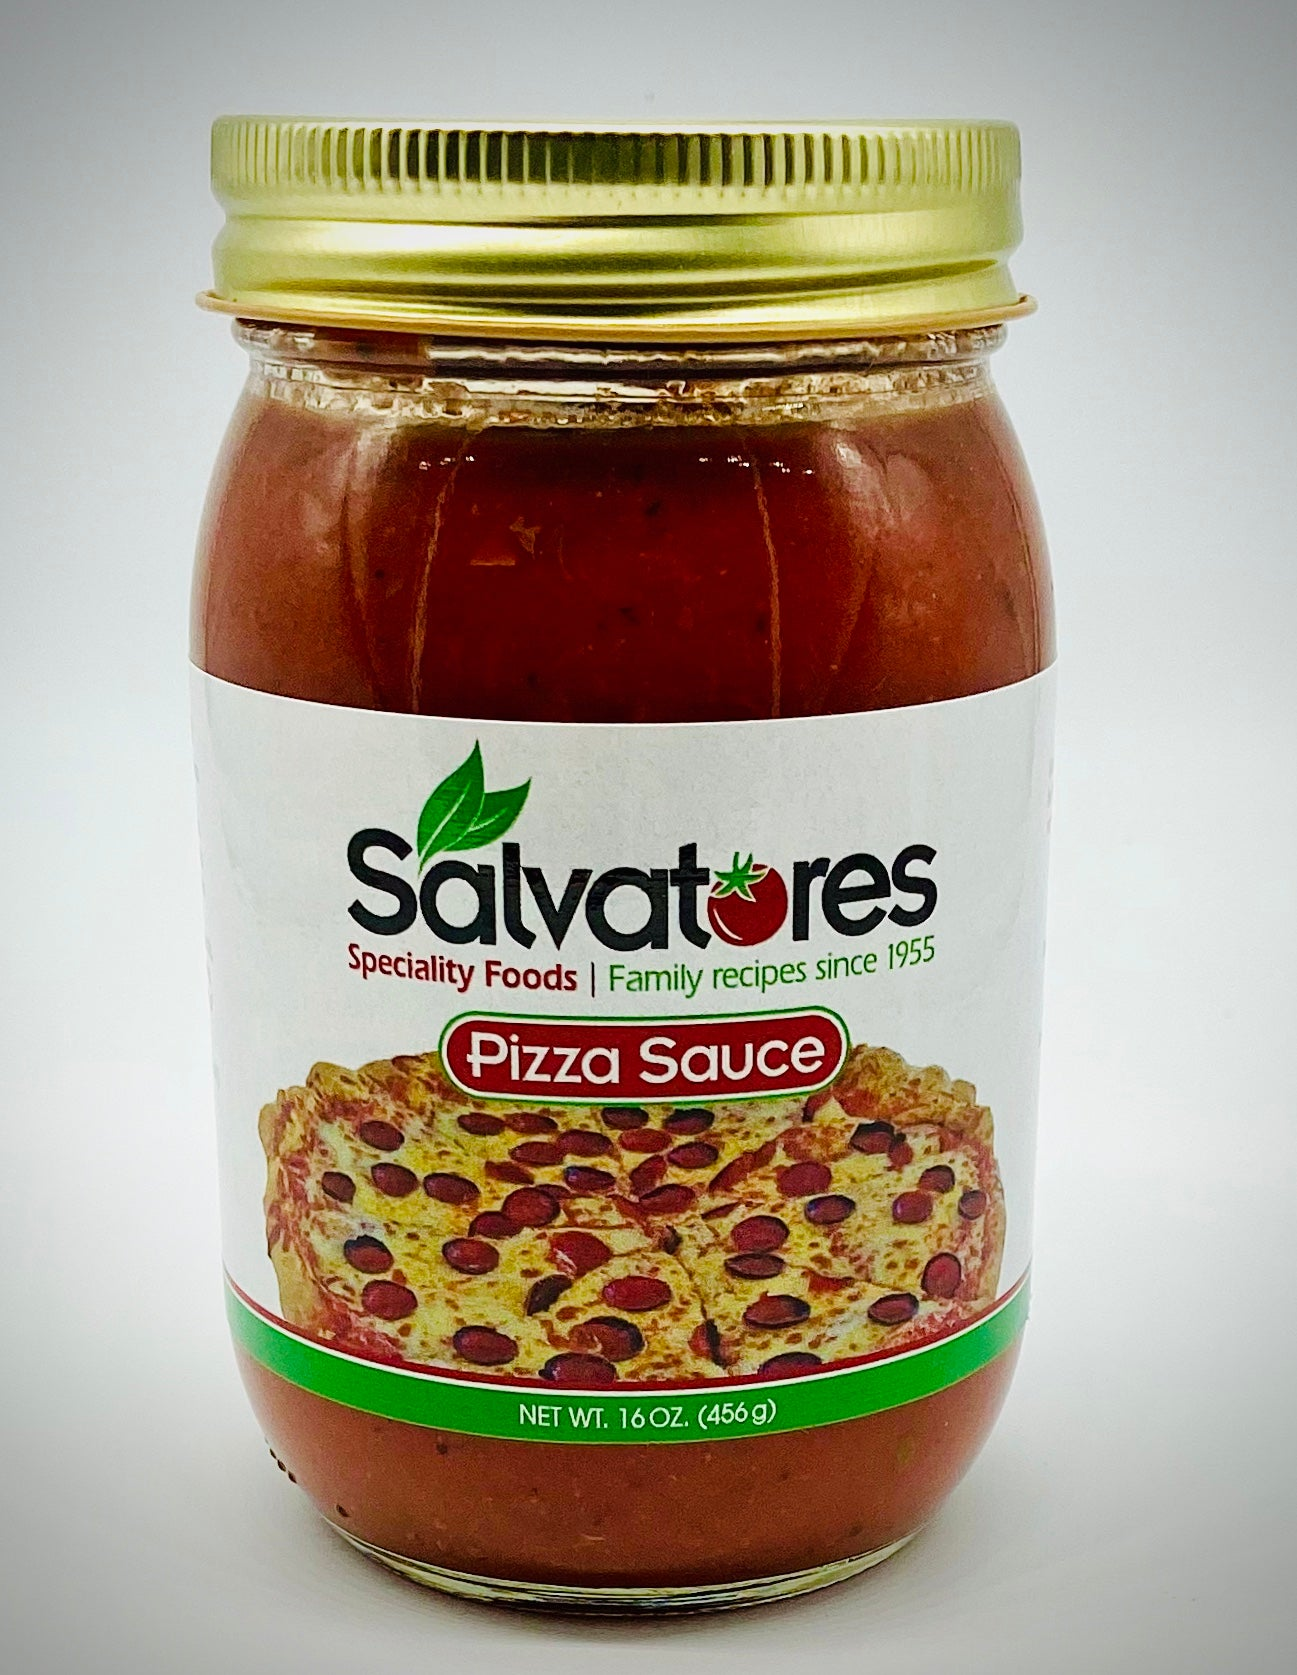 Salvatore's Pizza Sauce